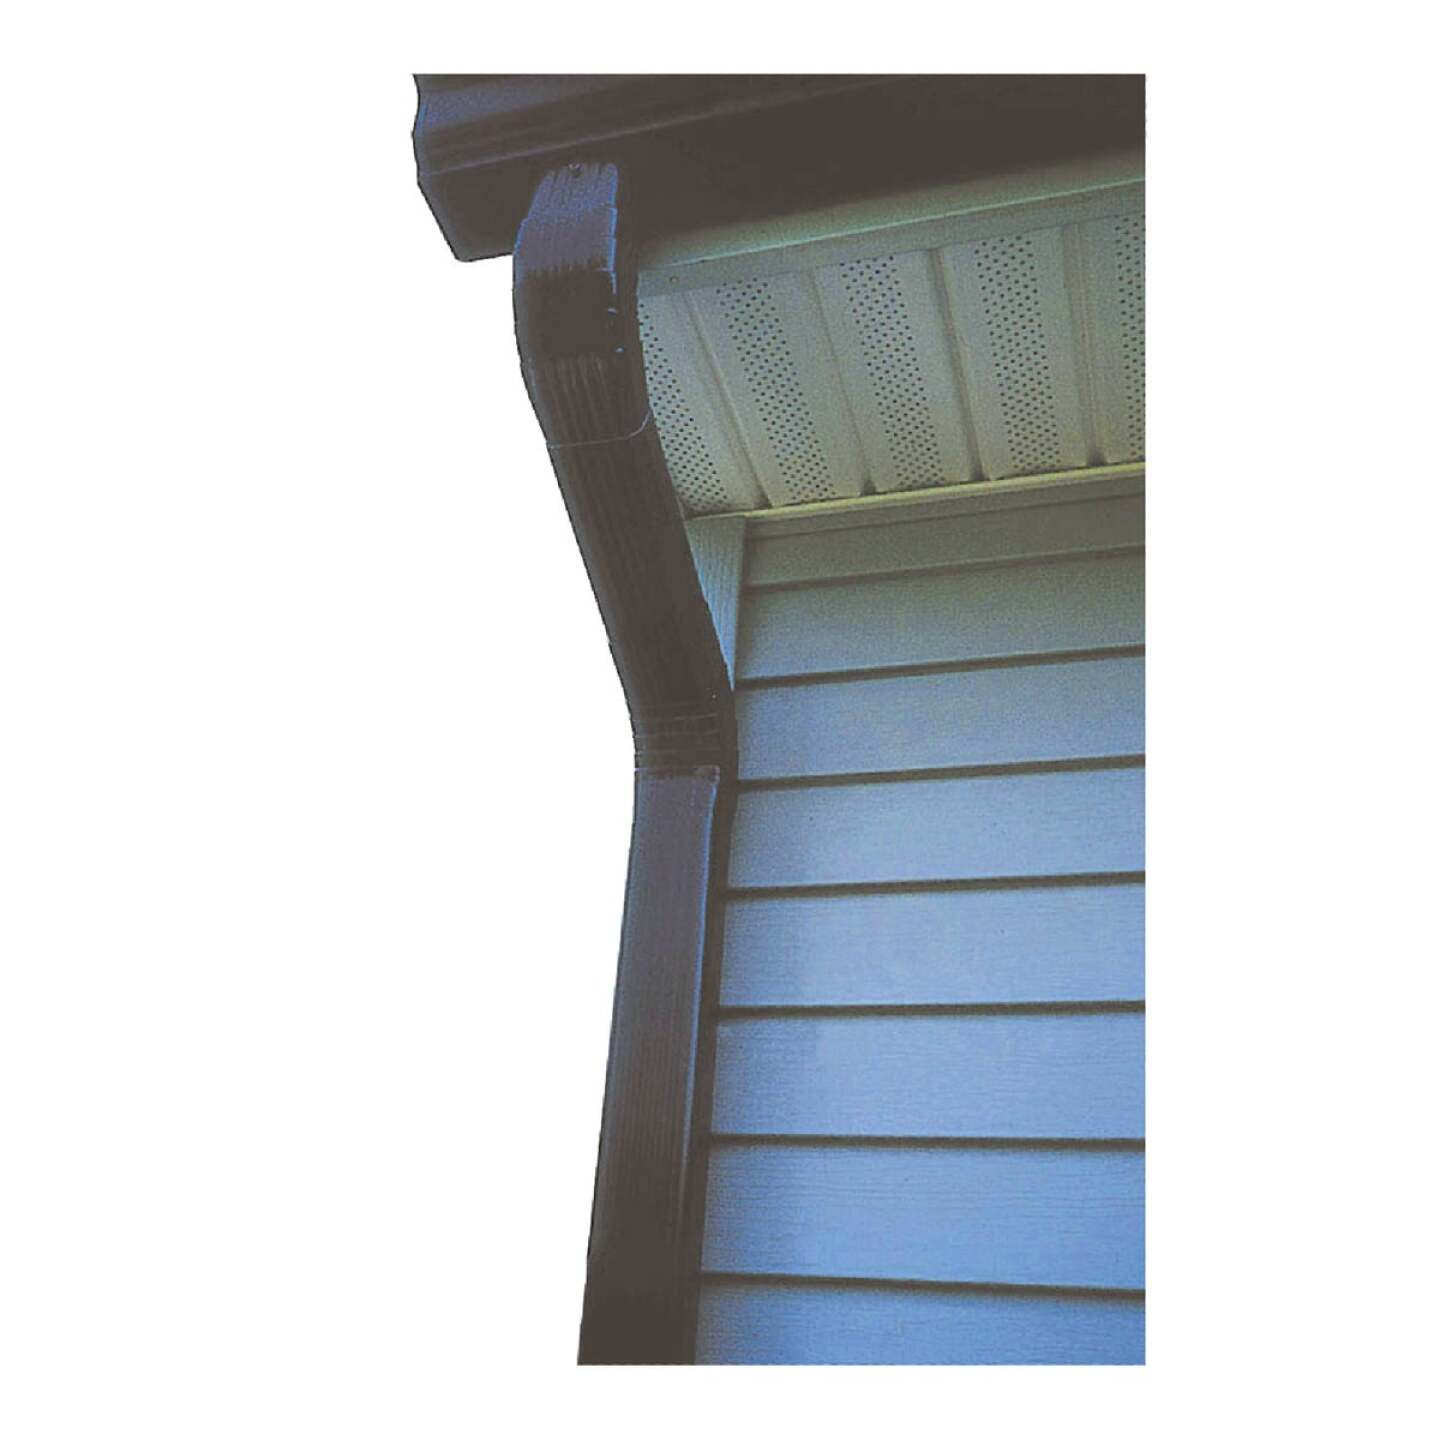 Spectra Metals 2 In. x 3 In. Brown Aluminum Downspout Image 2